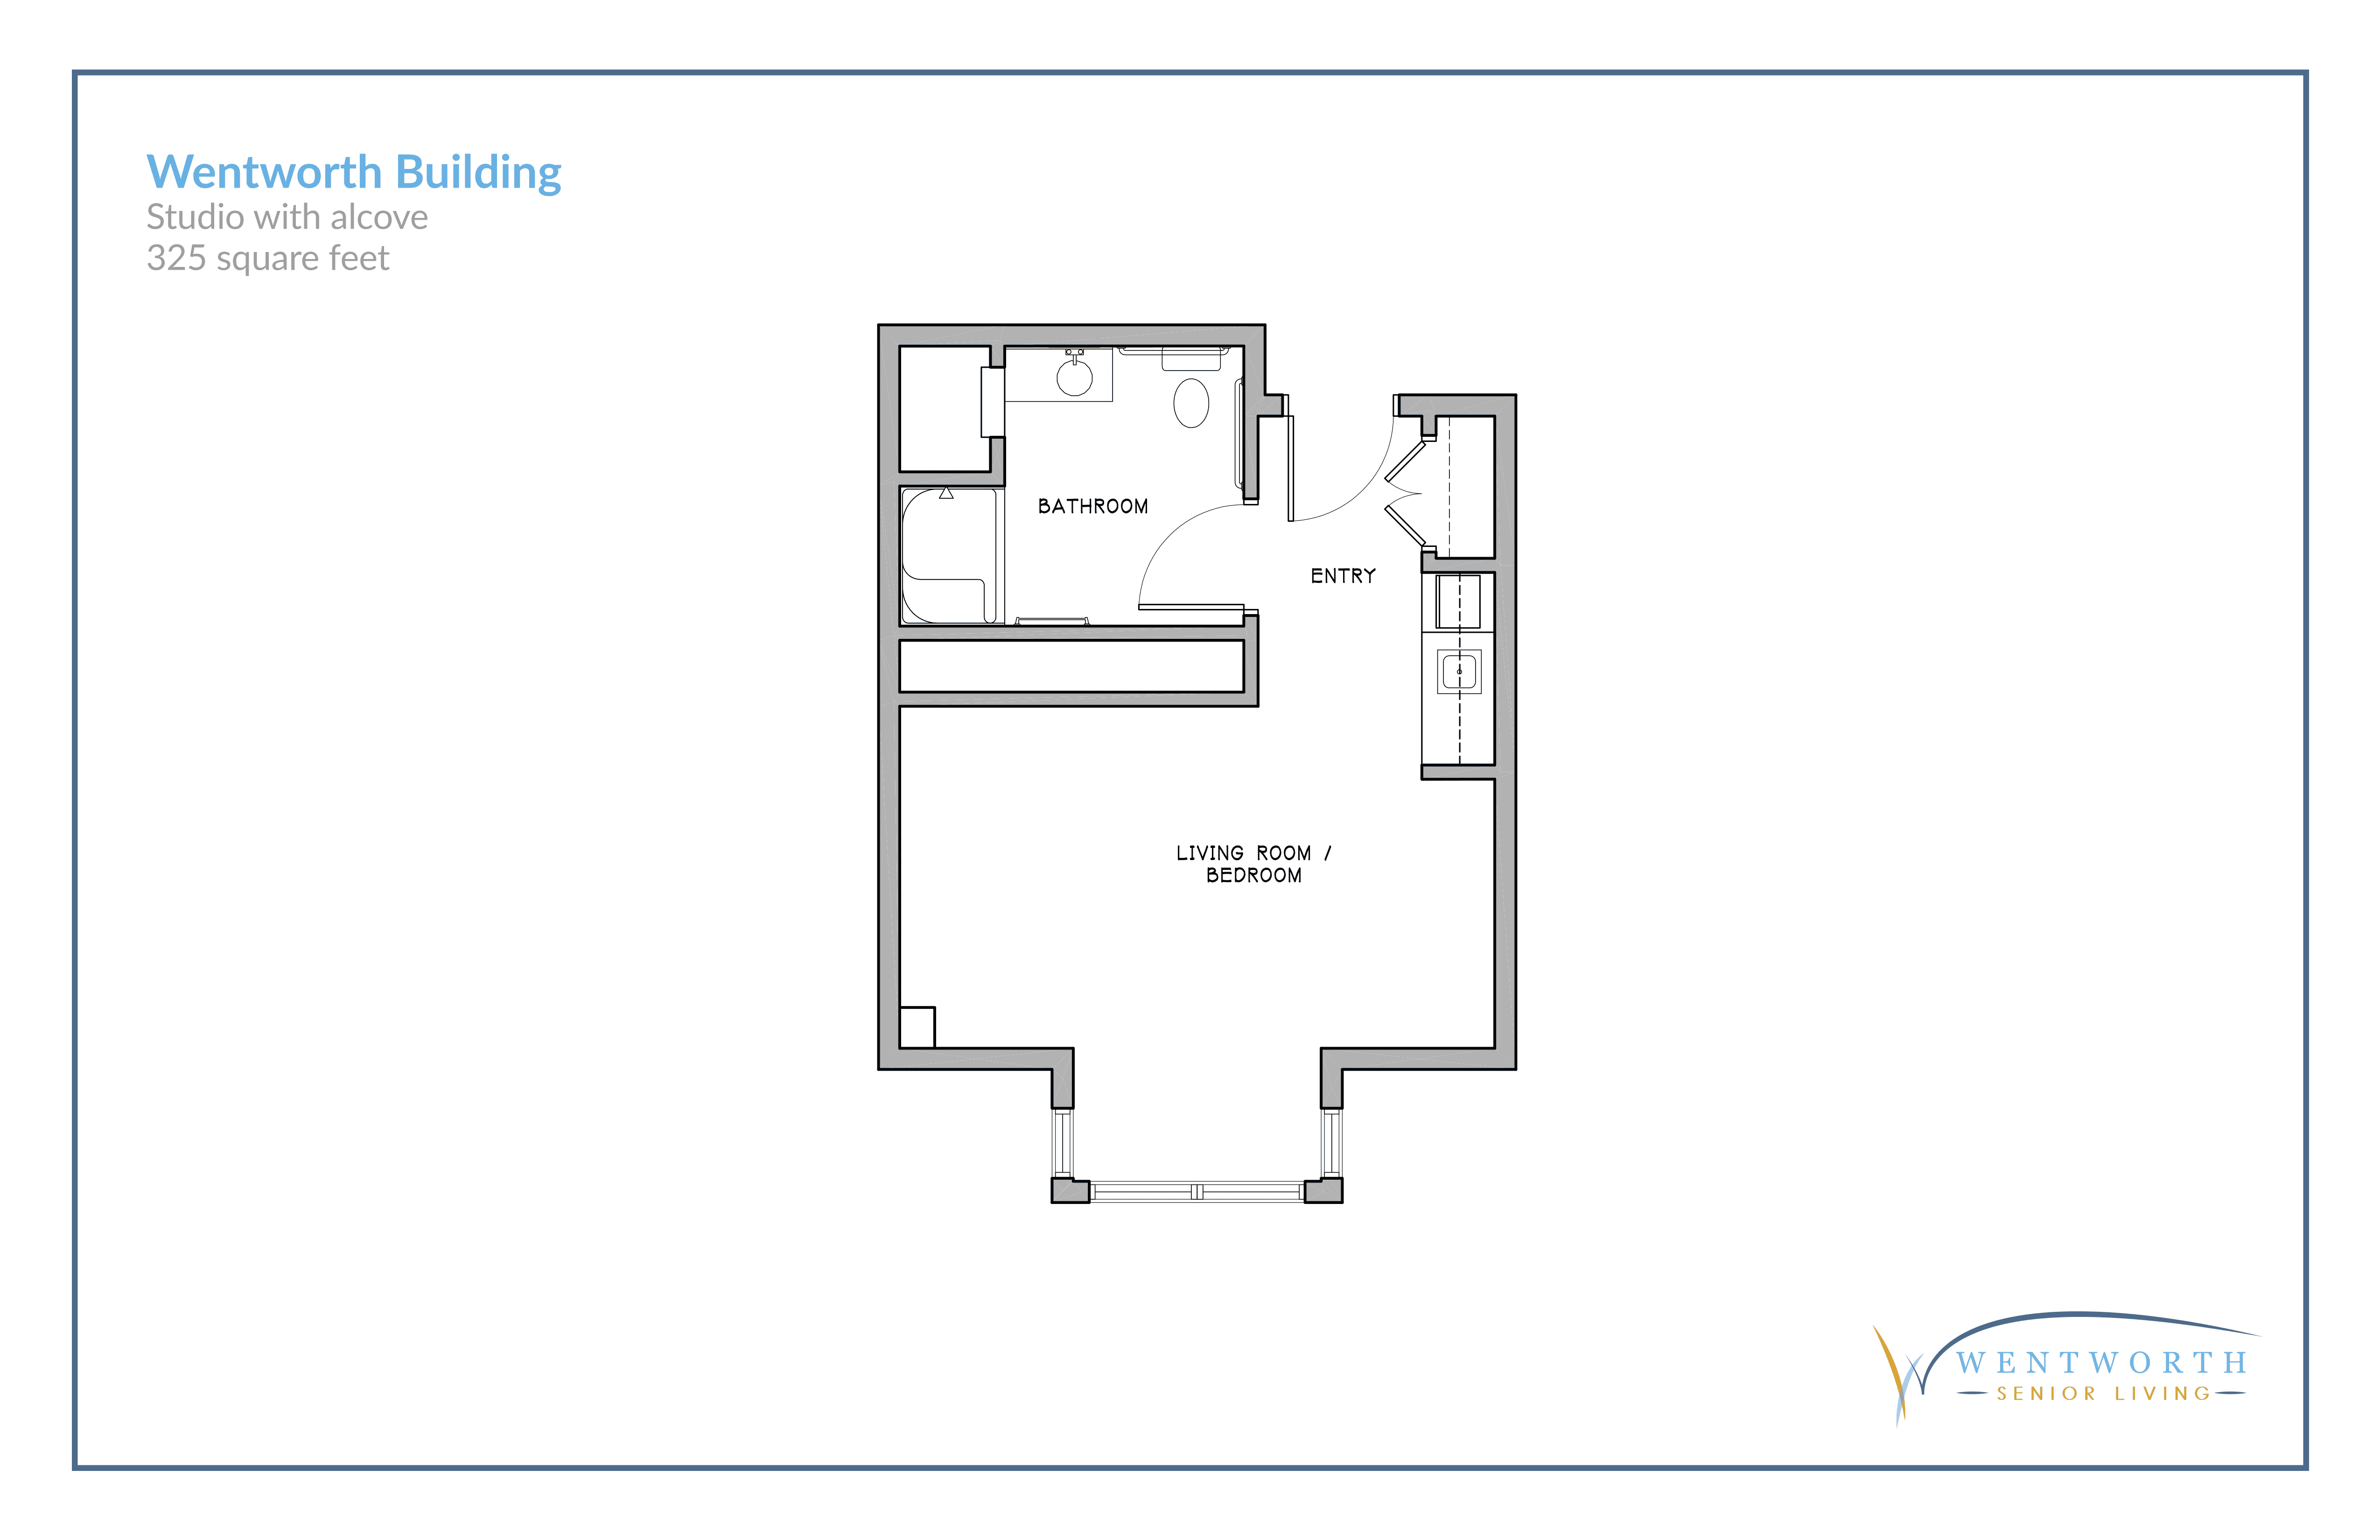 Floor plan for a studio unit with an alcove.